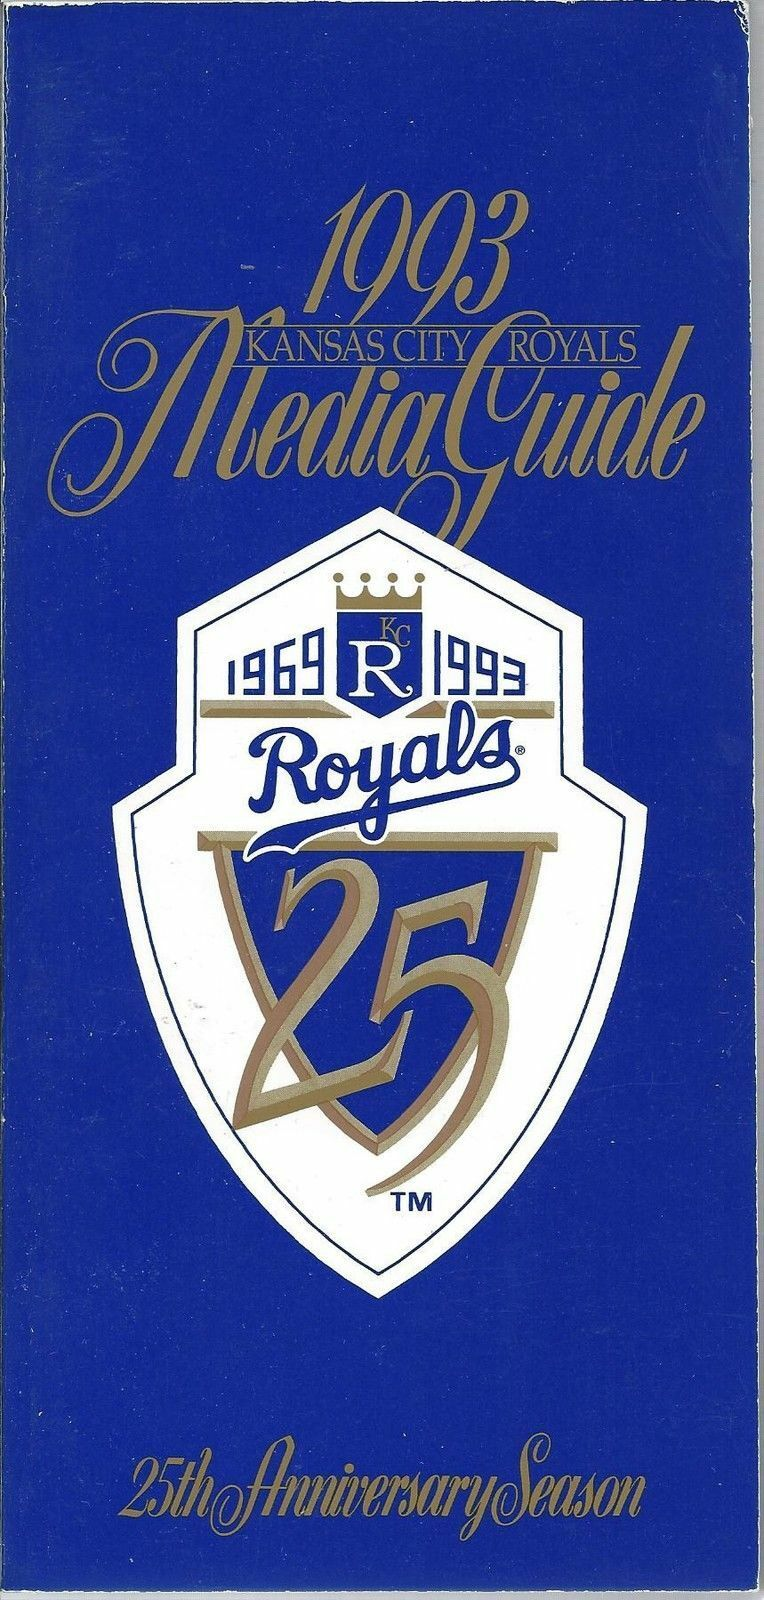 1993 Kansas City Royals Baseball MLB Media Guide - Annual Player Information